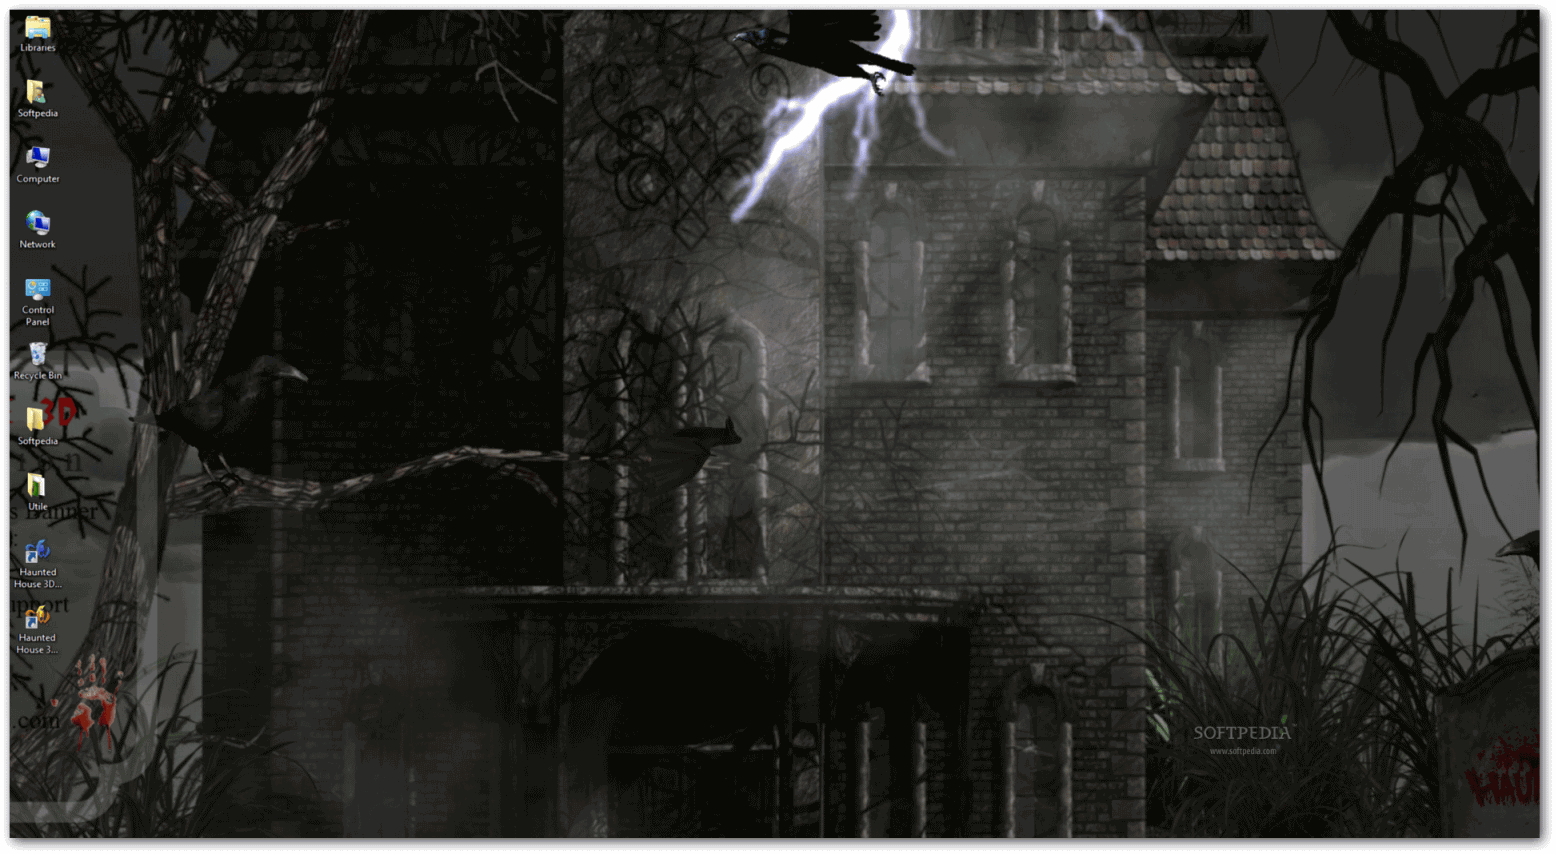 Haunted house wallpapers wallpapersafari for Wallpaper 3d for house